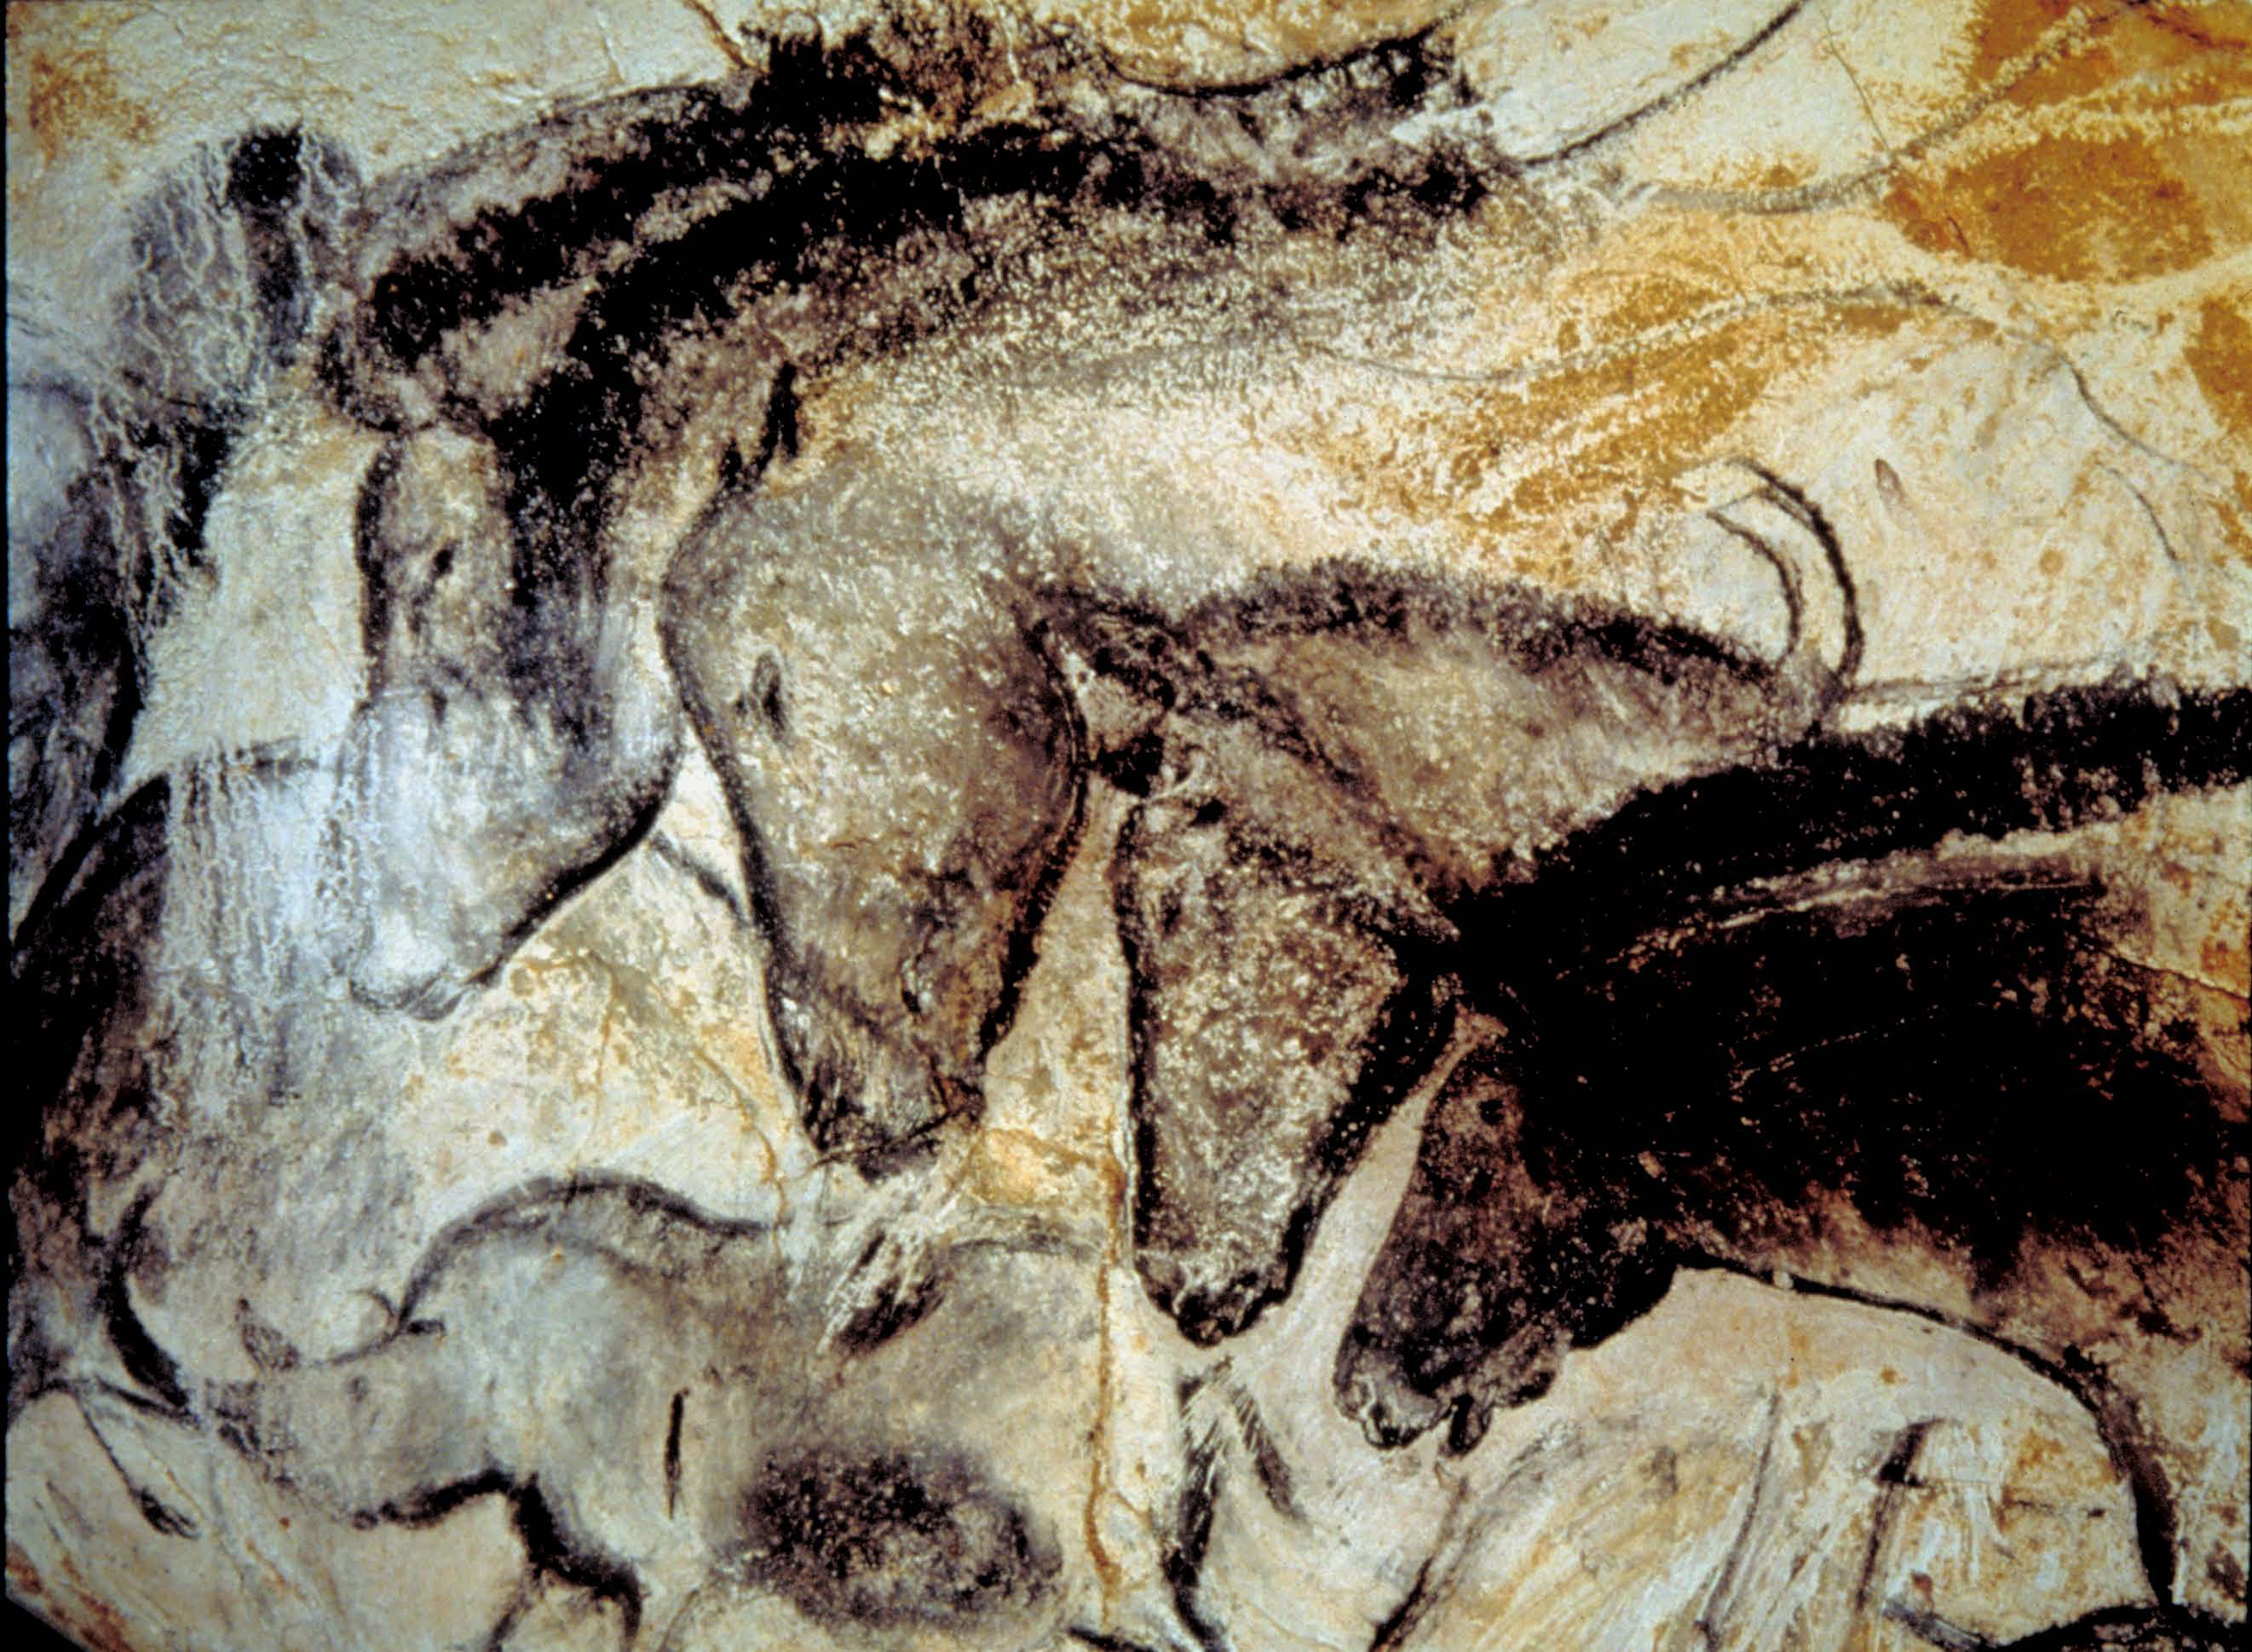 horse cave lesbian dating site Not recorded by cave drawings, the ovodov horse belongs to the subgenus sussemionus which was earlier thought to have become extinct some 400,000 years ago  facebook dating is here - for users .